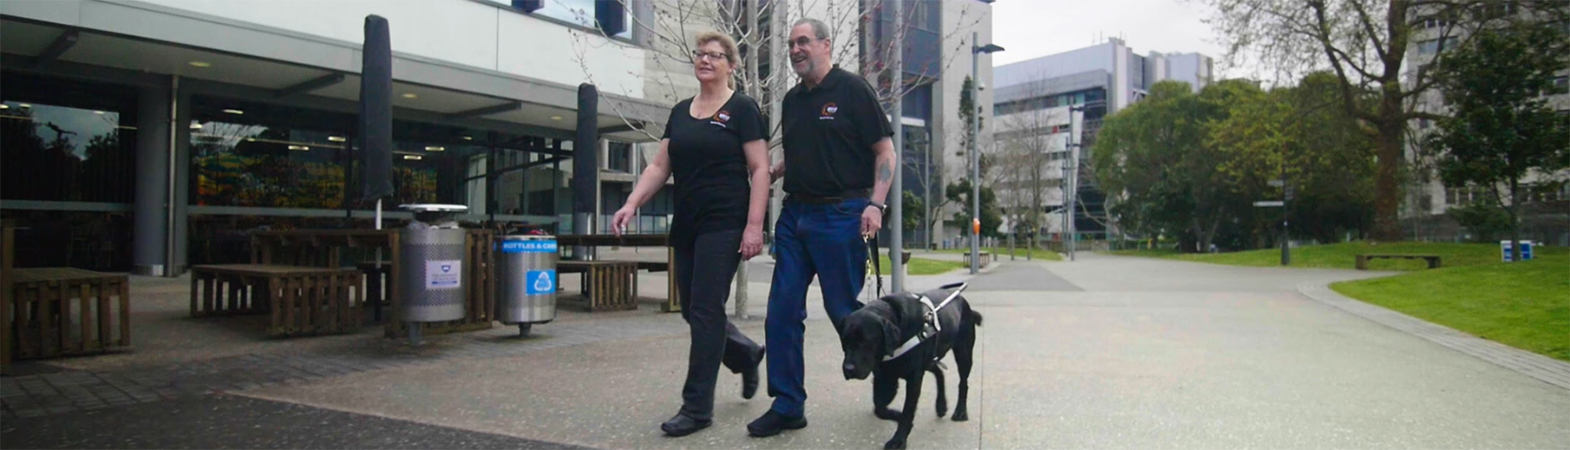 A lady is guiding a man who walking with a guide dog